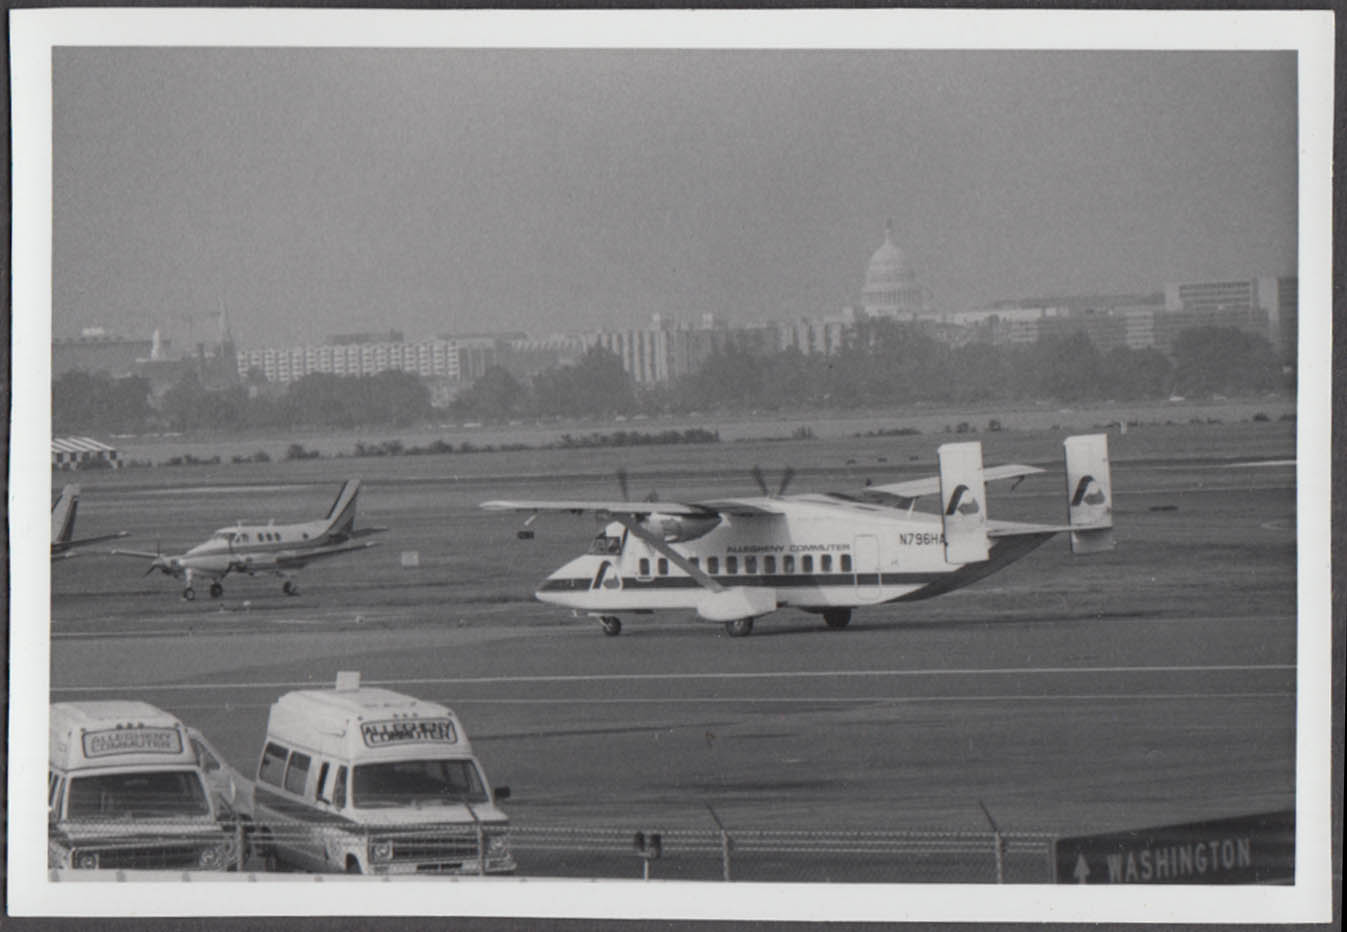 Image for Allegheny Commuter Airlines Short 330 N796HA Washington DC snapshot photo